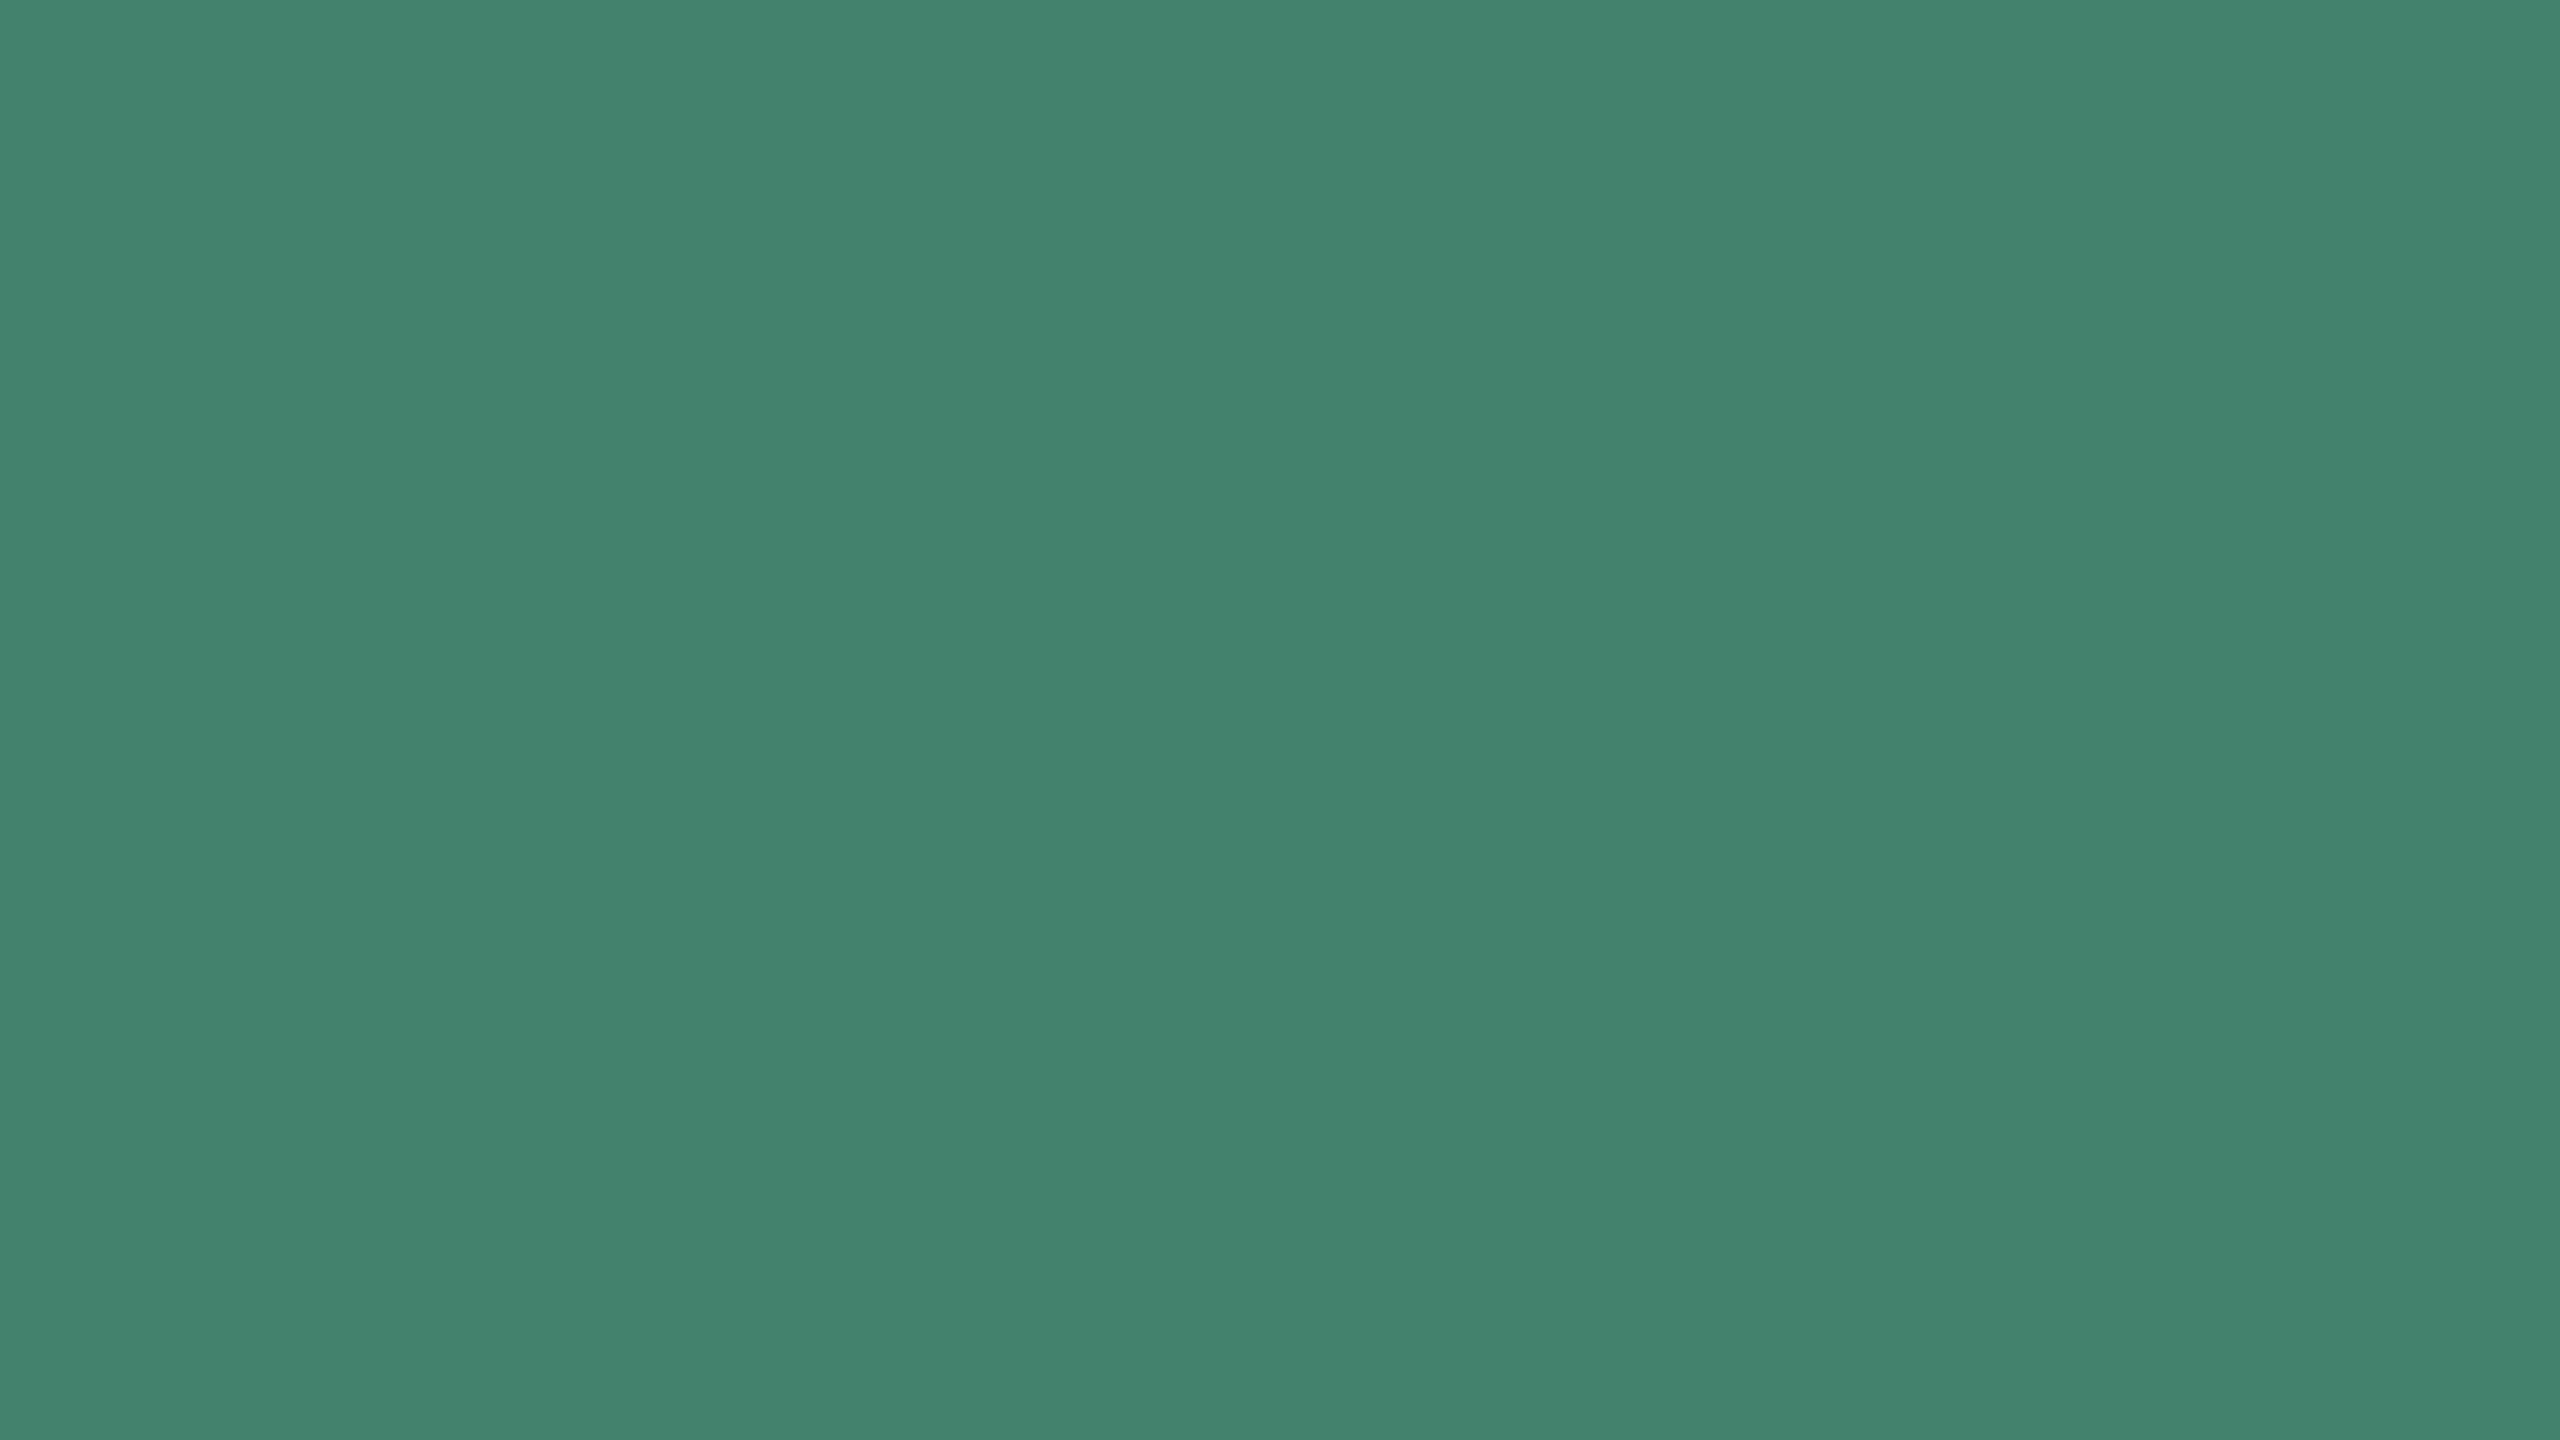 2560x1440 Viridian Solid Color Background